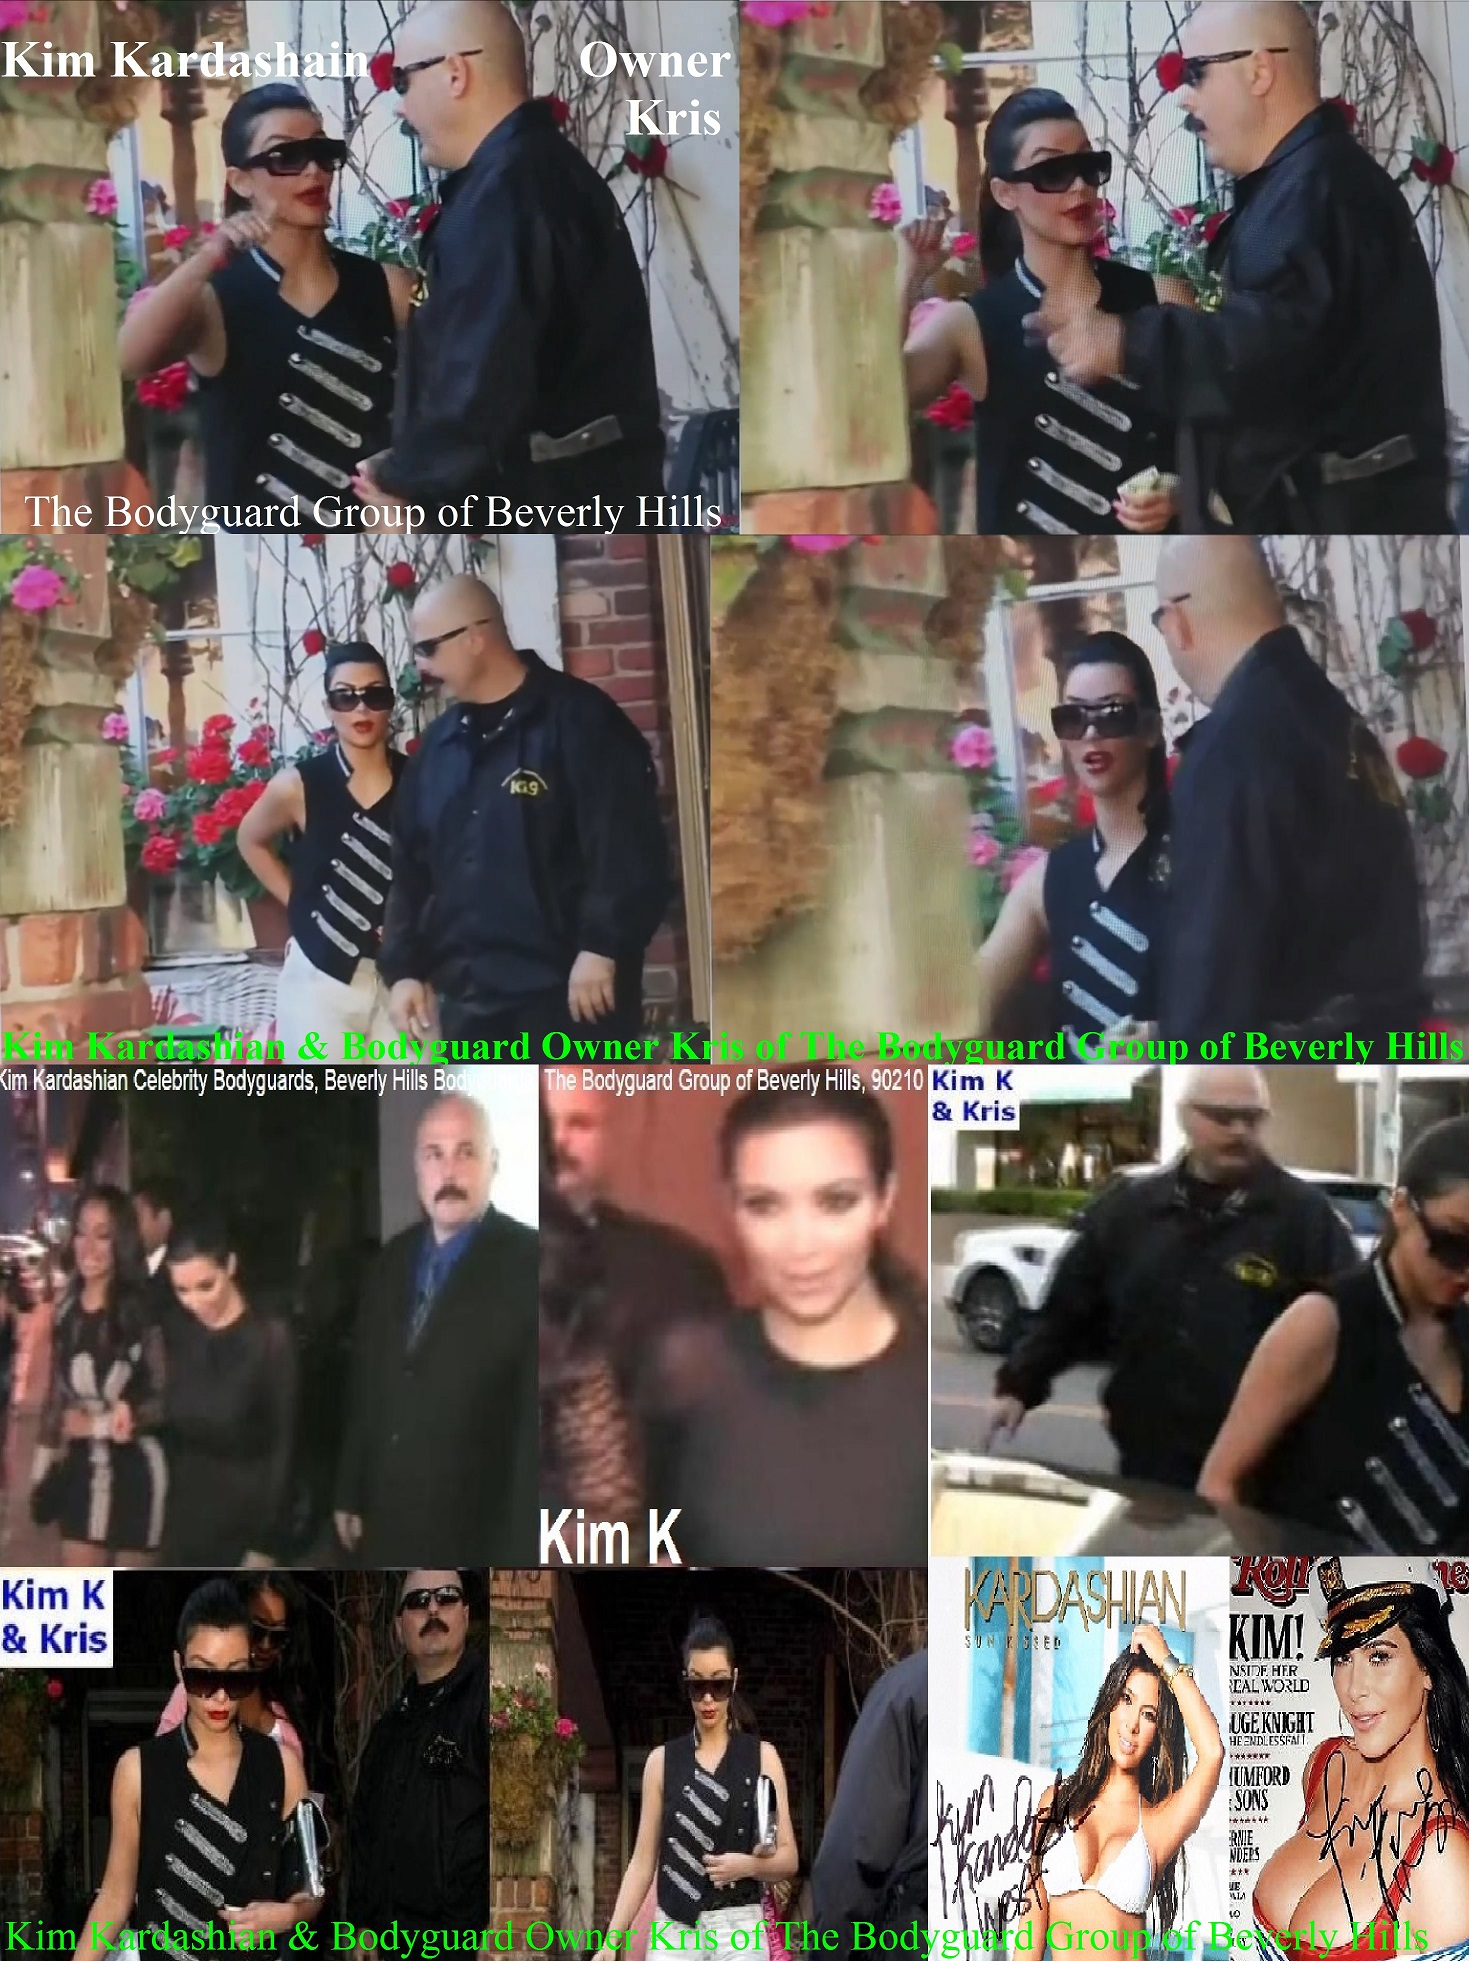 Kim Kardashian Bodyguards Famous celebrity bodyguards Kris Herzog The Bodyguard Group of Beverly Hills, 90210 Los Angeles celebrity bodyguards for hire